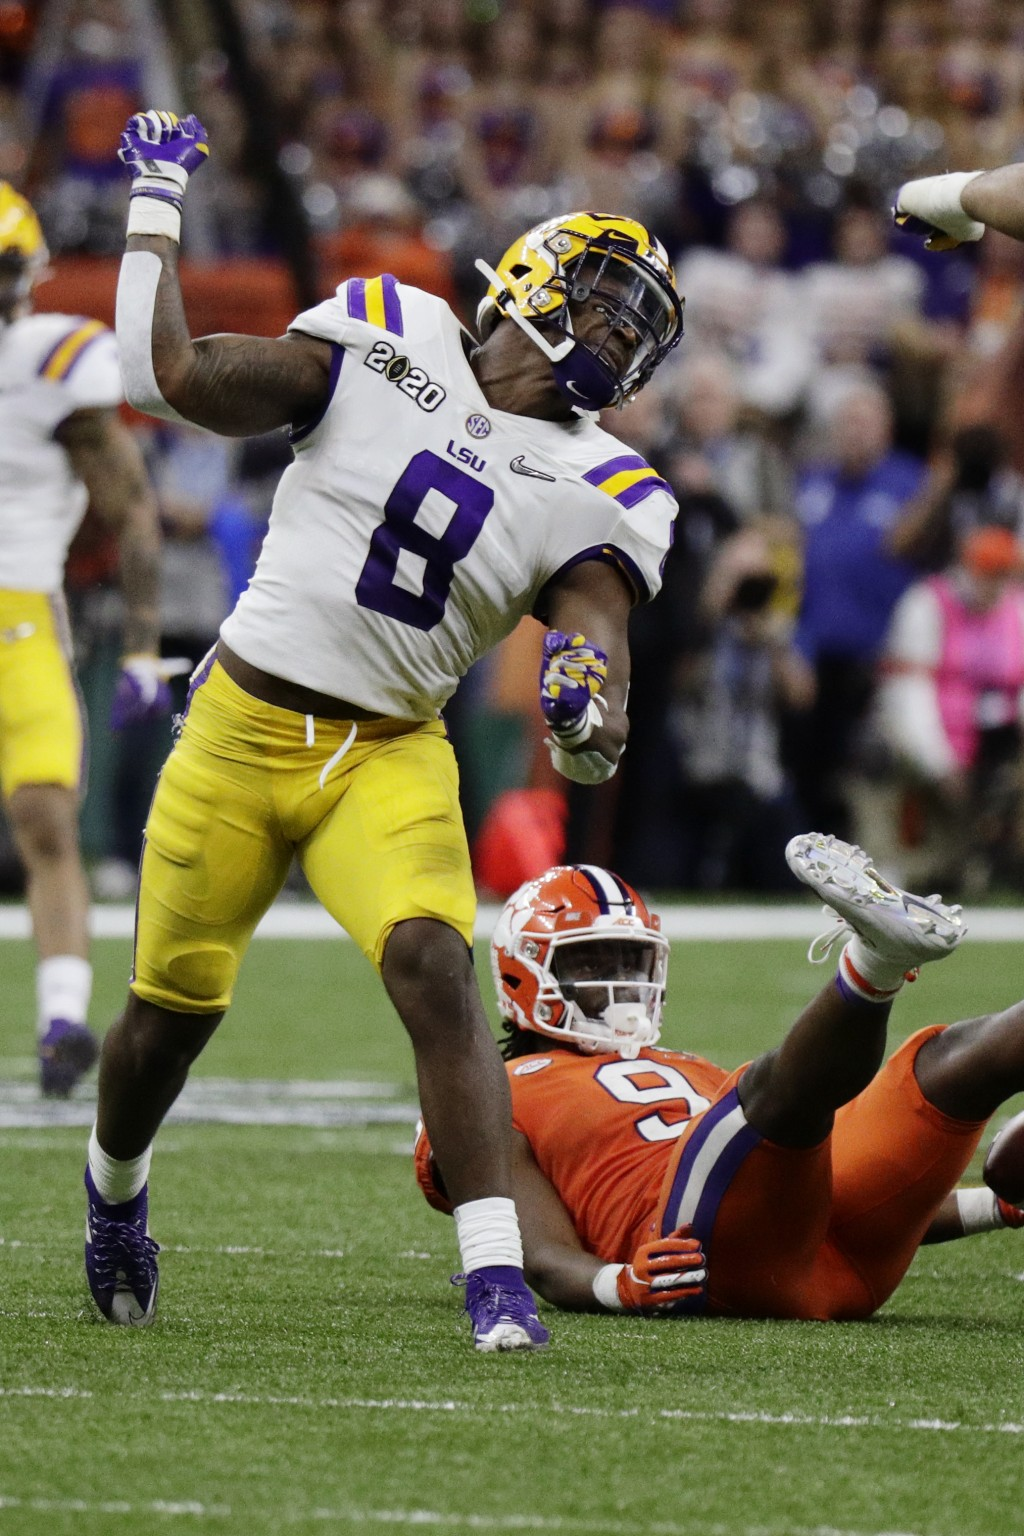 LSU linebacker Patrick Queen celebrates after tackling Clemson running back Travis Etienne during the second half of a NCAA College Football Playoff n...